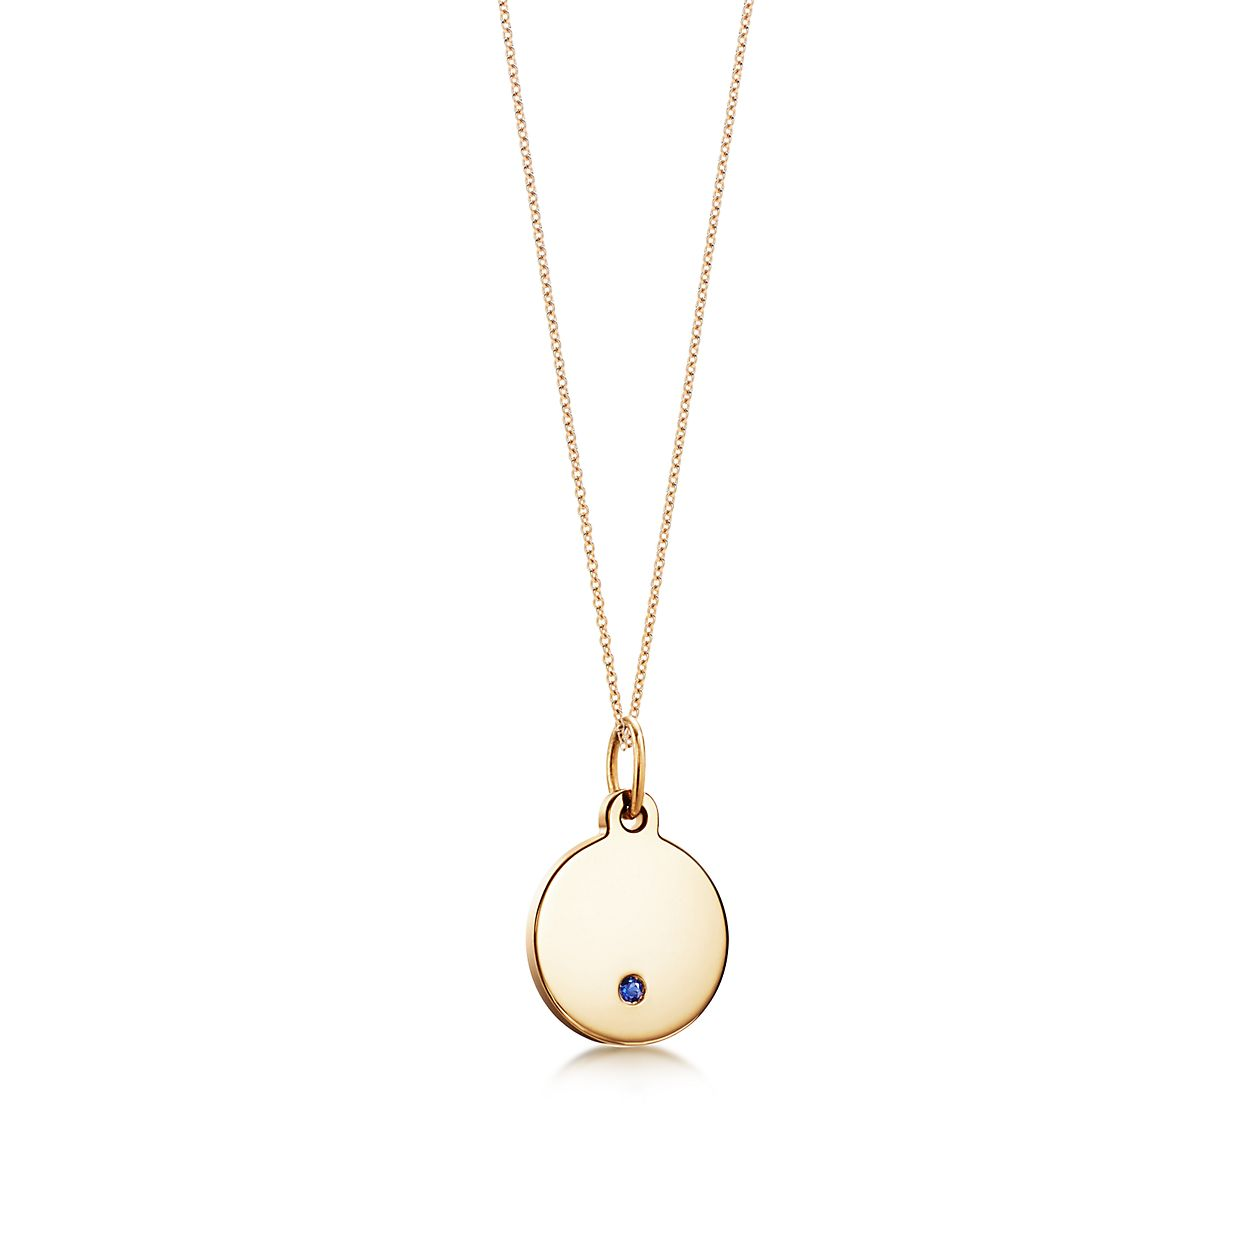 a865d9e9e643 Tiffany Charms round tag in 18k gold with a sapphire